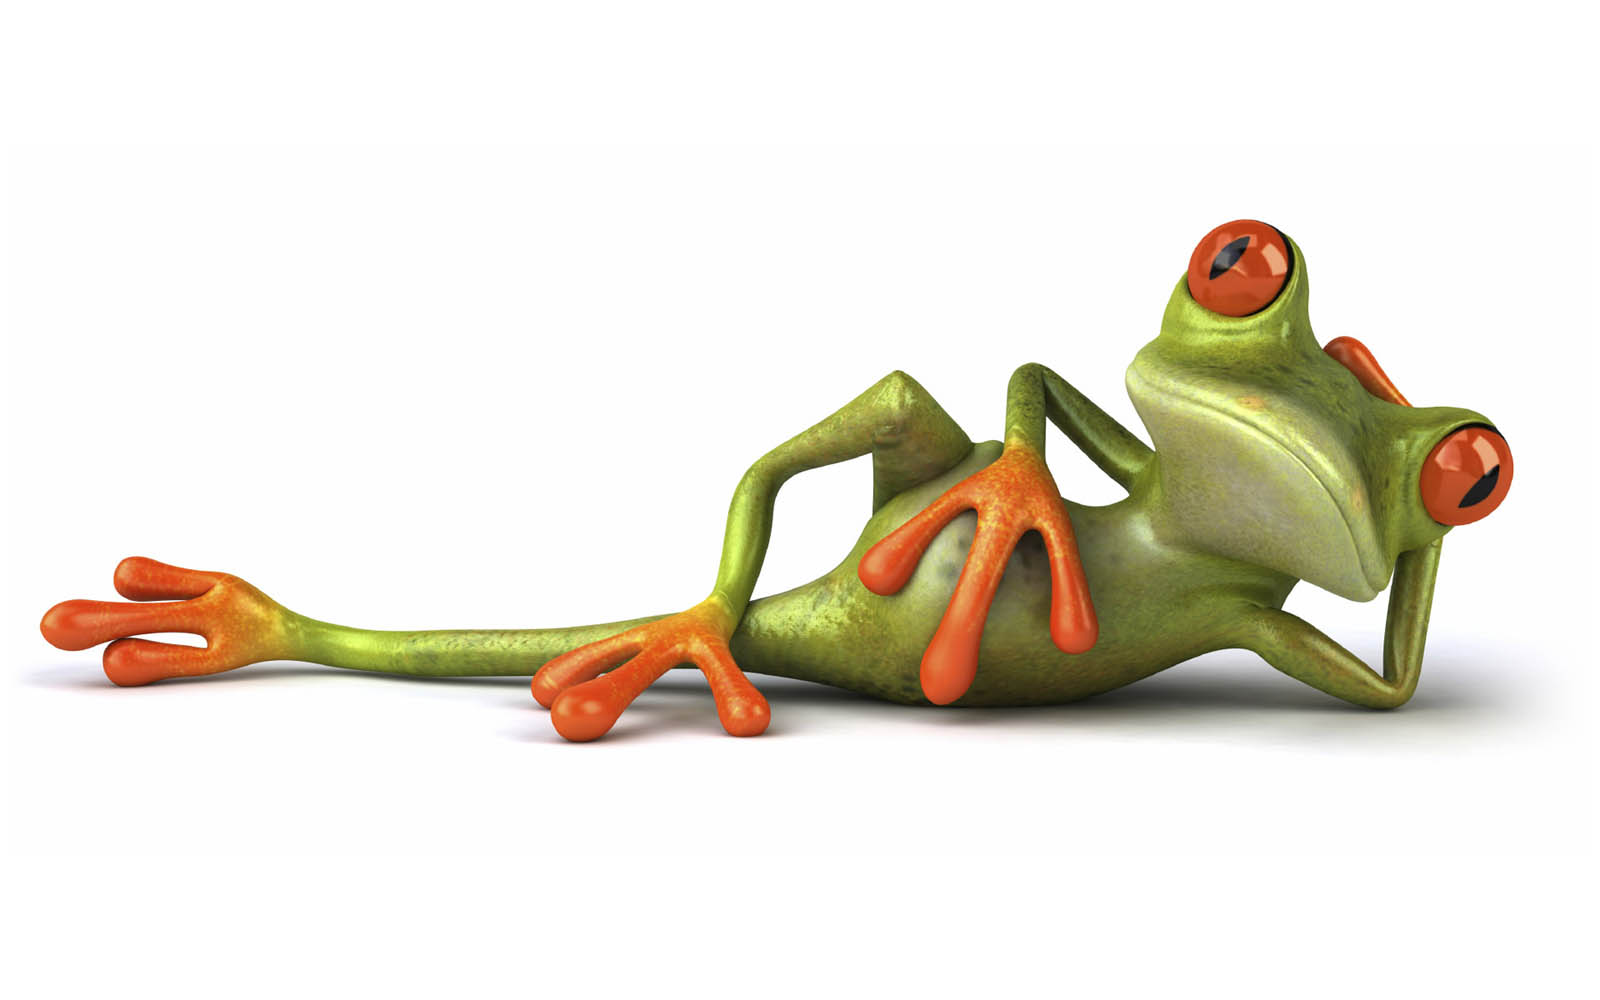 Tag Lazy Funny Frog Wallpaper Background Pao Image And Picture For Free